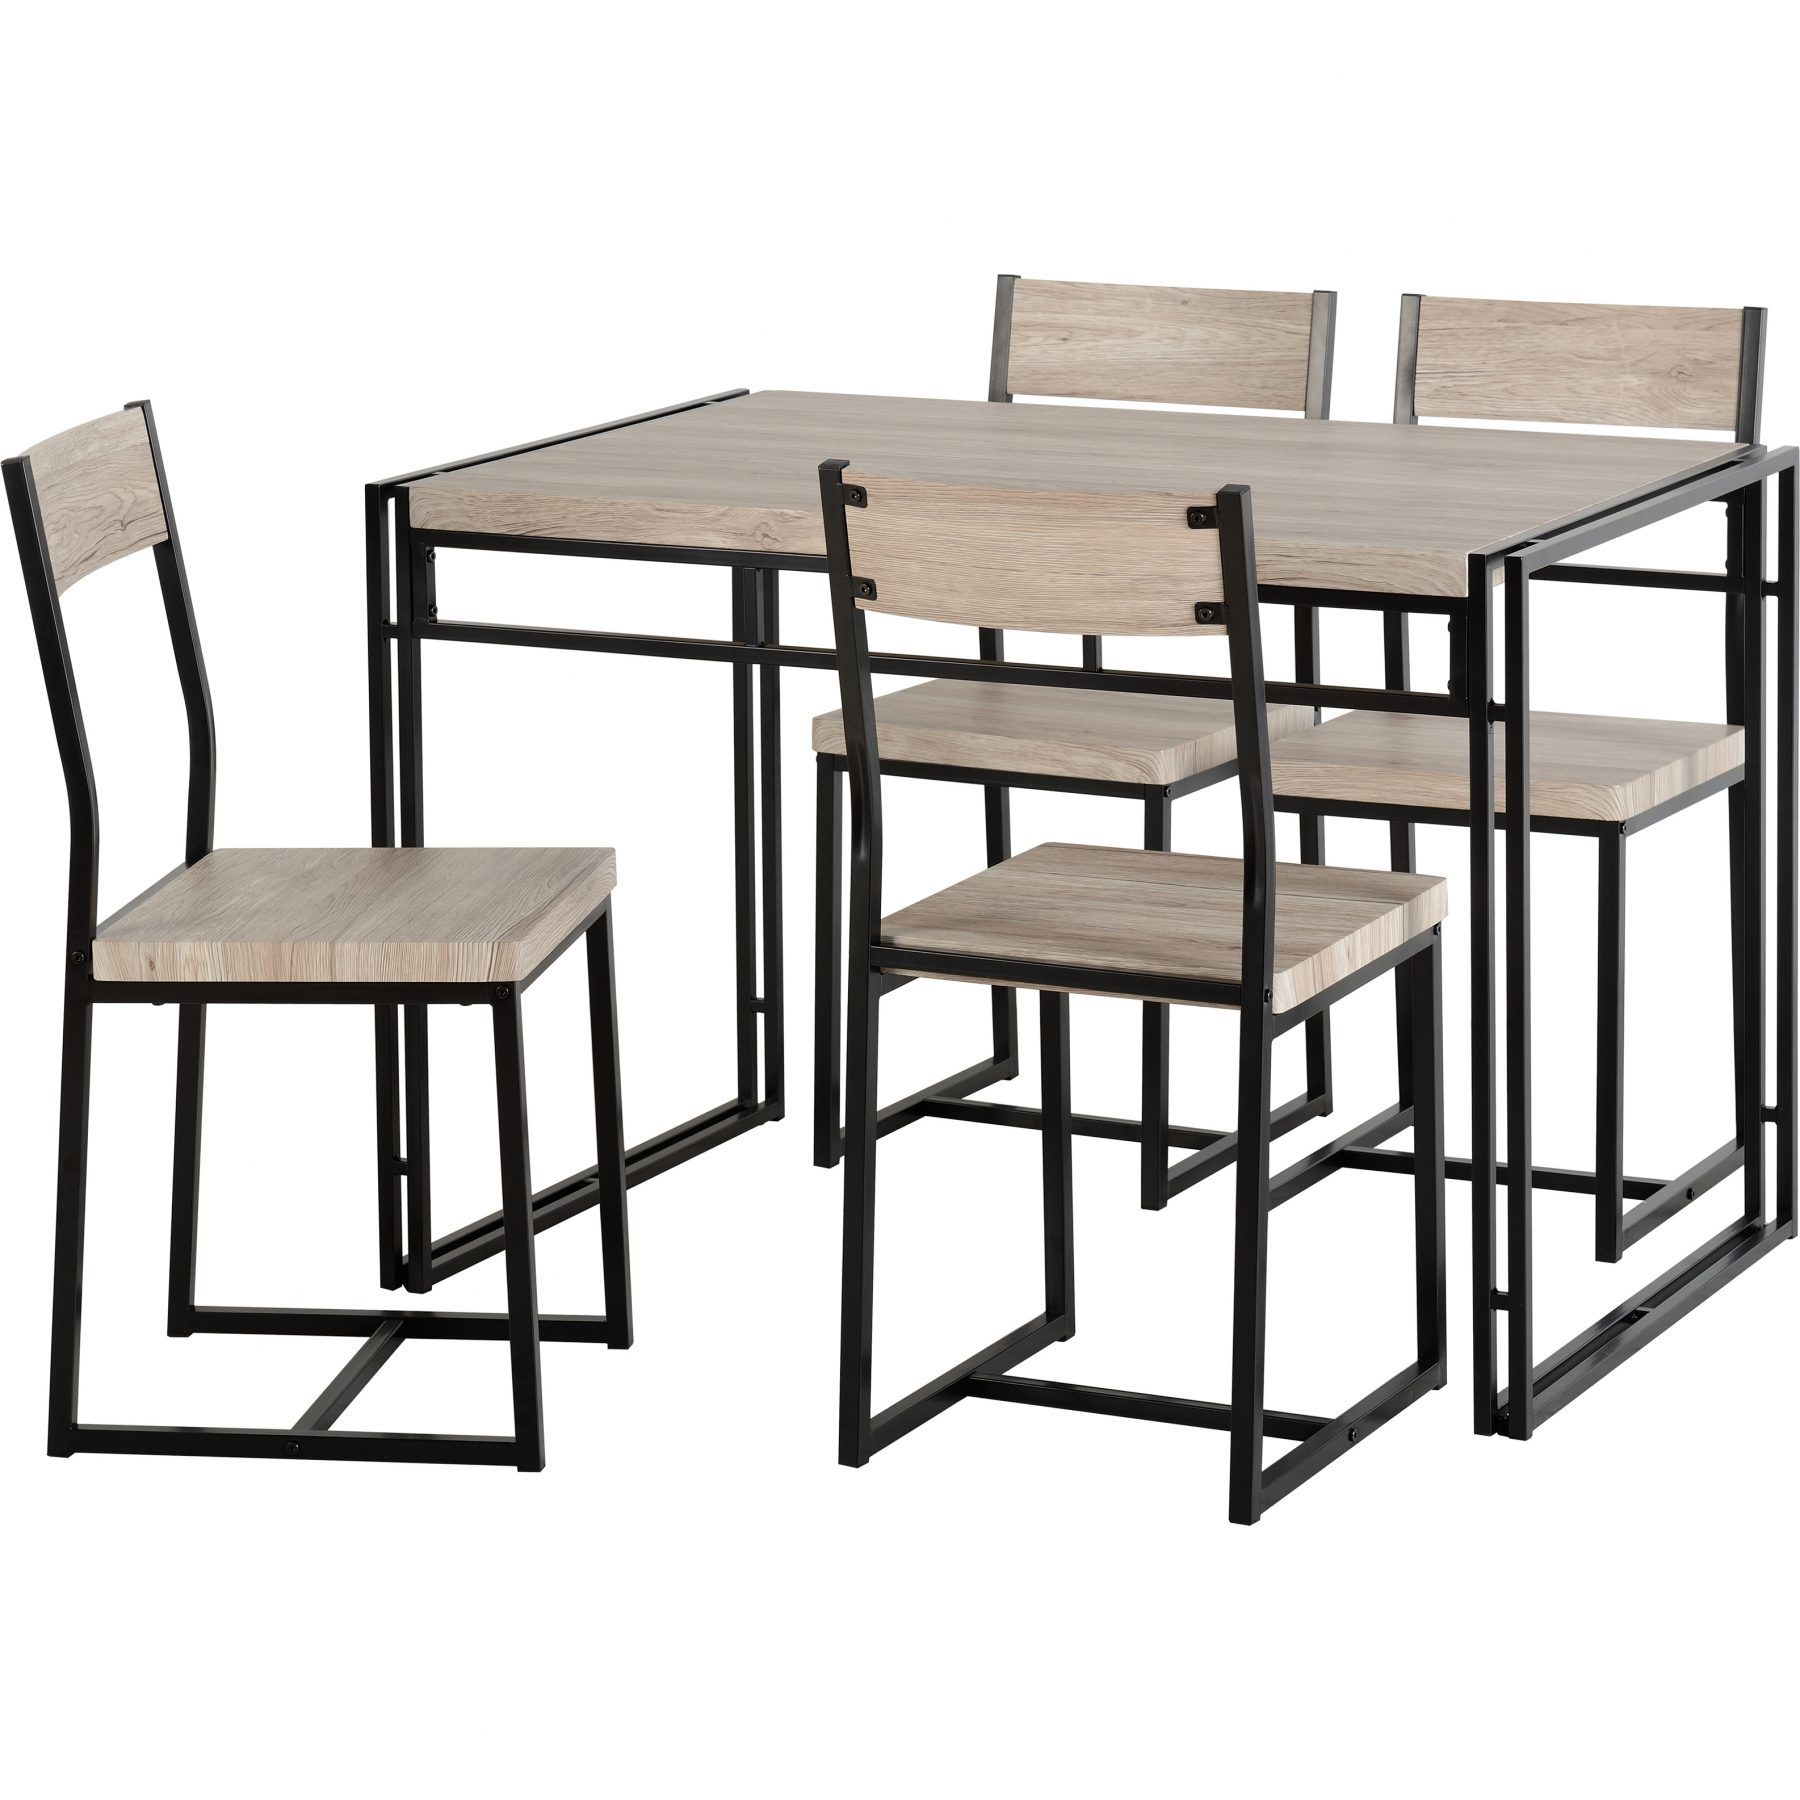 Warwick Oak Effect Dining Set with 4 Chairs